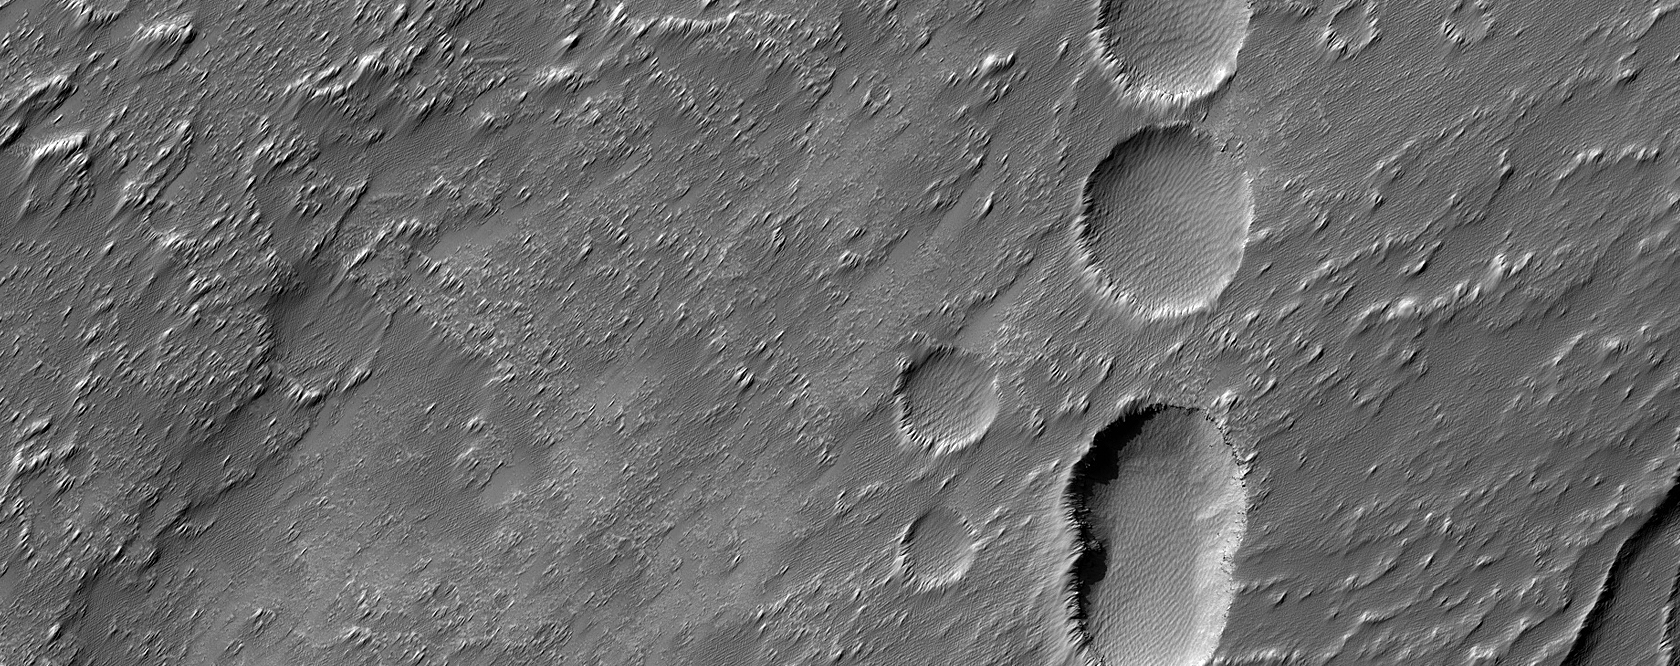 Chain of Pits Southwest of Arsia Mons